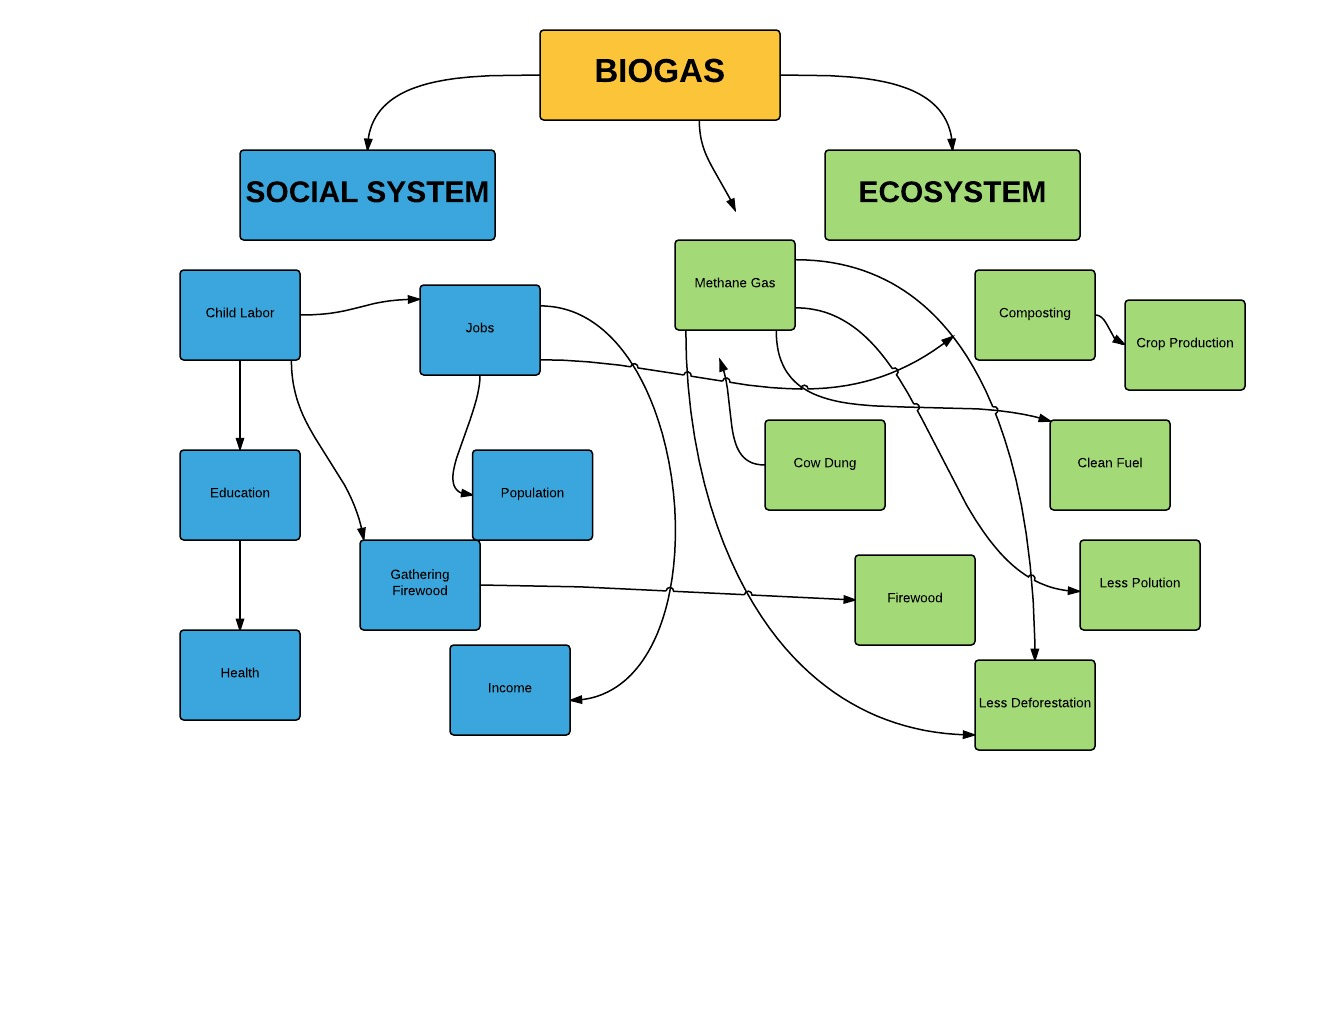 Biogas diagram geog 30 our perspectives the system diagram above conveys the human environment system by displaying the vast interactions of the social system and ecosystem within the biogas pooptronica Image collections